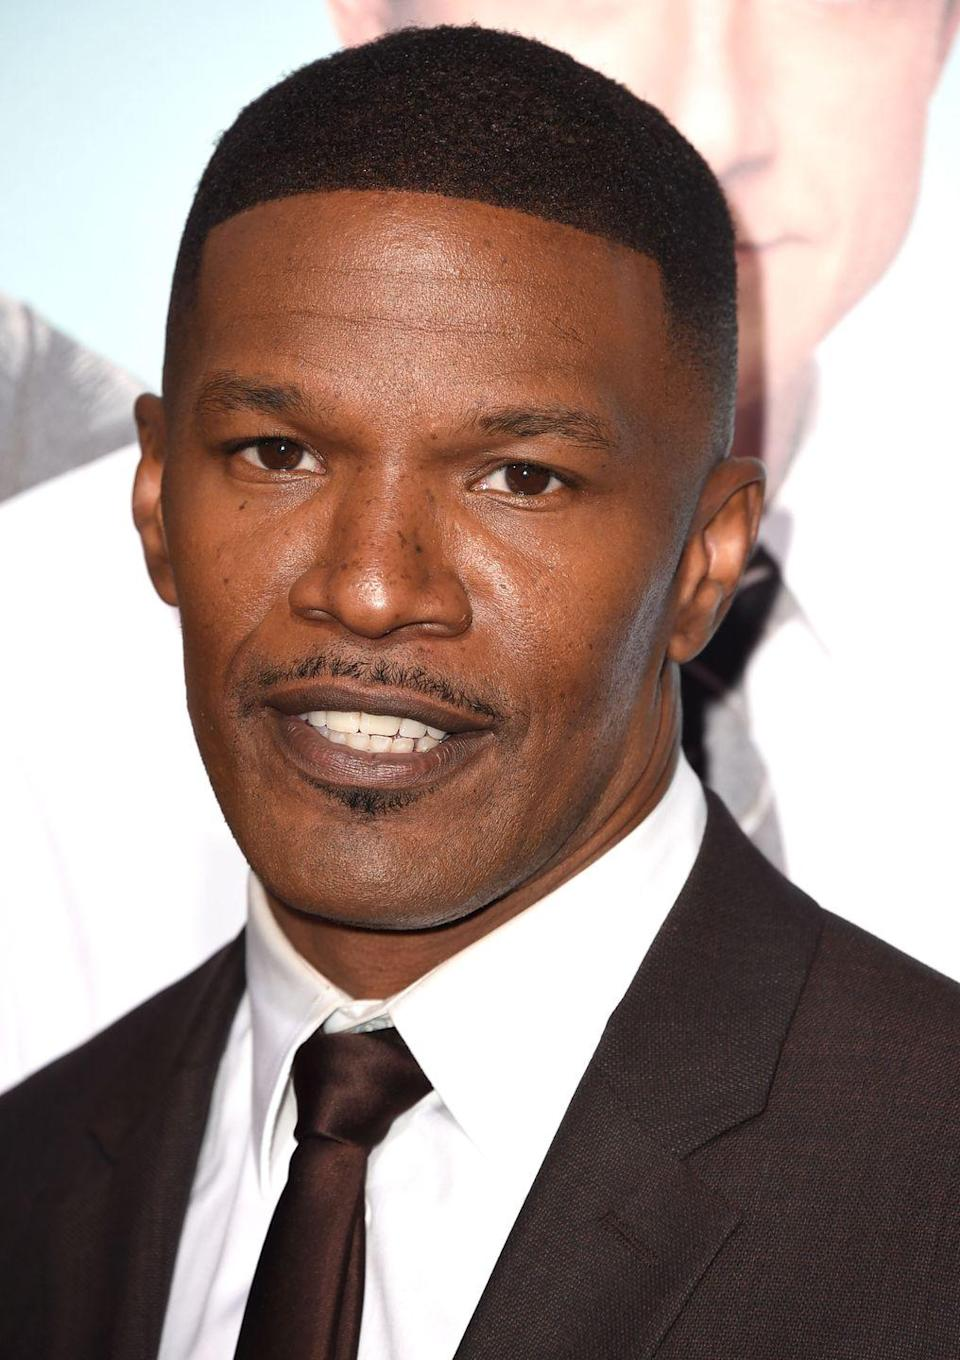 """<p>During his promotion for <em>The Kingdom</em>, Foxx reportedly said he was glad he didn't have to lie and say it was good like he'd had to with <em>Stealth. </em>He also <a href=""""http://www.hollywood.com/movies/jamie-foxx-stealth-was-a-bad-film-57169712/"""" rel=""""nofollow noopener"""" target=""""_blank"""" data-ylk=""""slk:said,"""" class=""""link rapid-noclick-resp"""">said,</a> """"Sometimes you do a movie and you have to go promote it, so on <em>Stealth </em>I was like, 'Yeah, this is the greatest.' And people would see me after seeing the movie and say, 'I can't believe you lied to me like that.'""""</p>"""